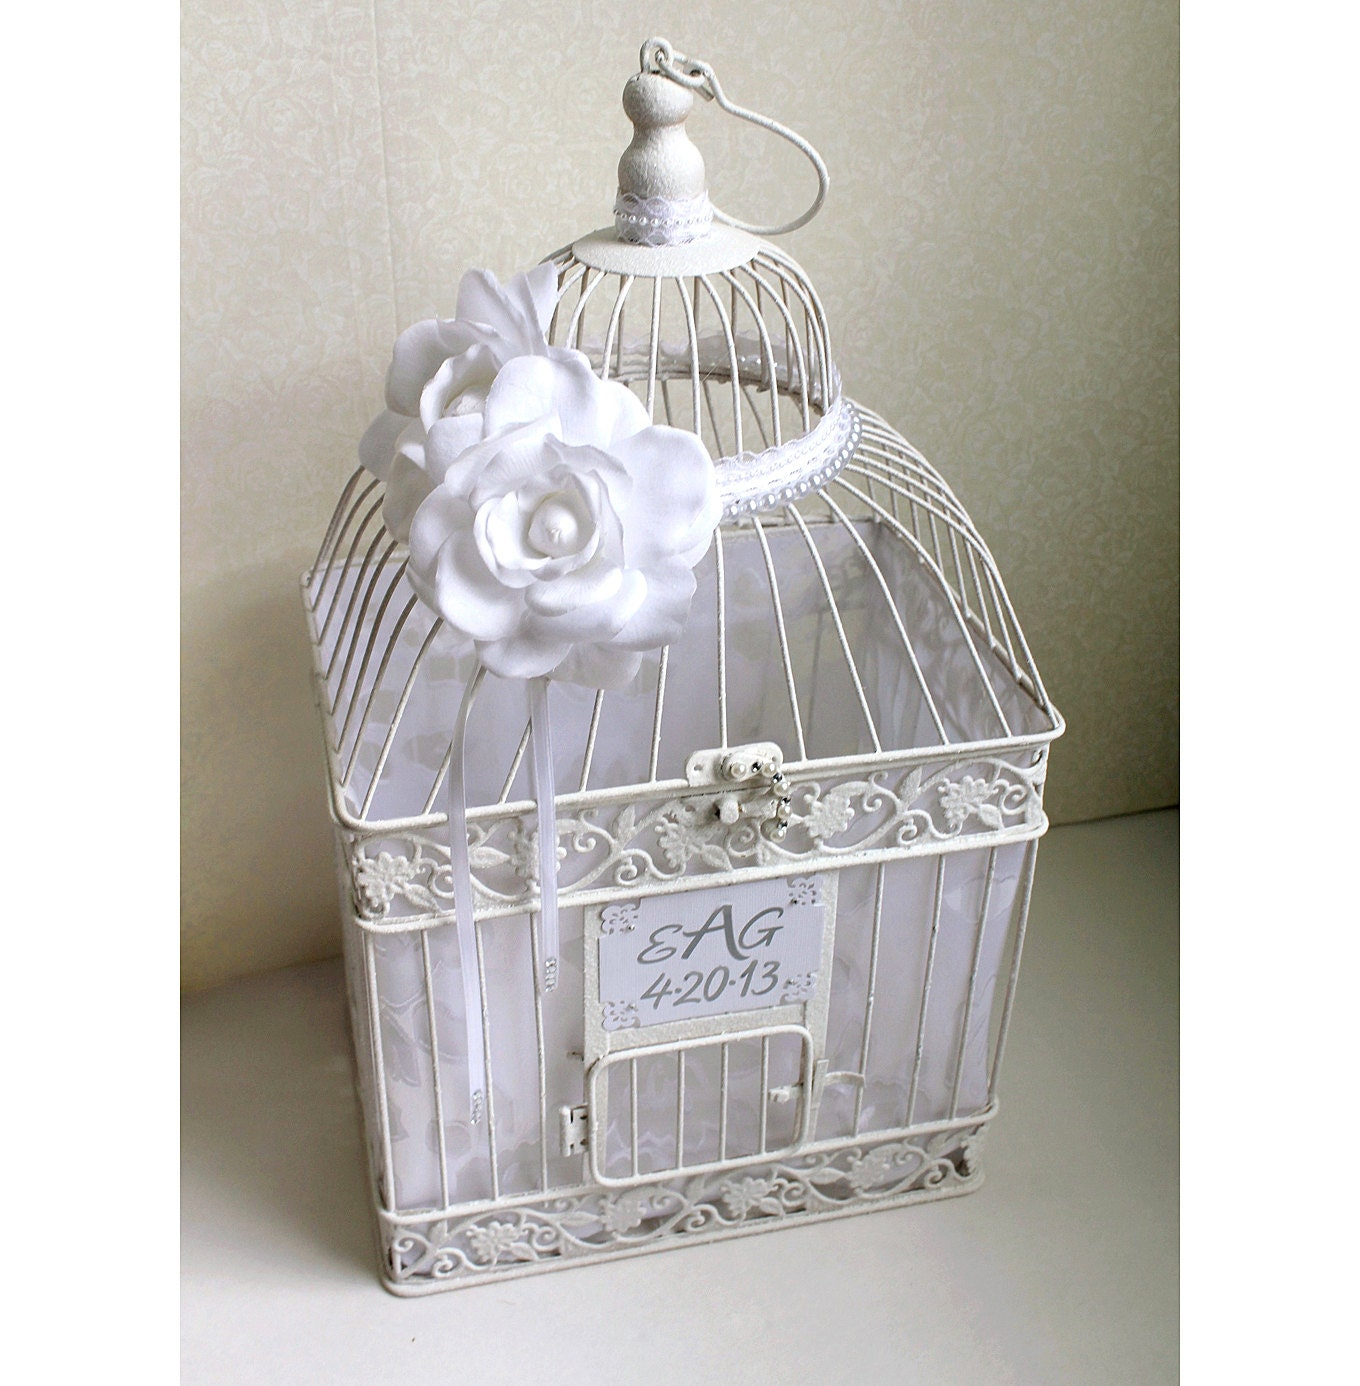 Birdcage Wedding Card Holder: Wedding Birdcage Card Holder White. Wedding Card By